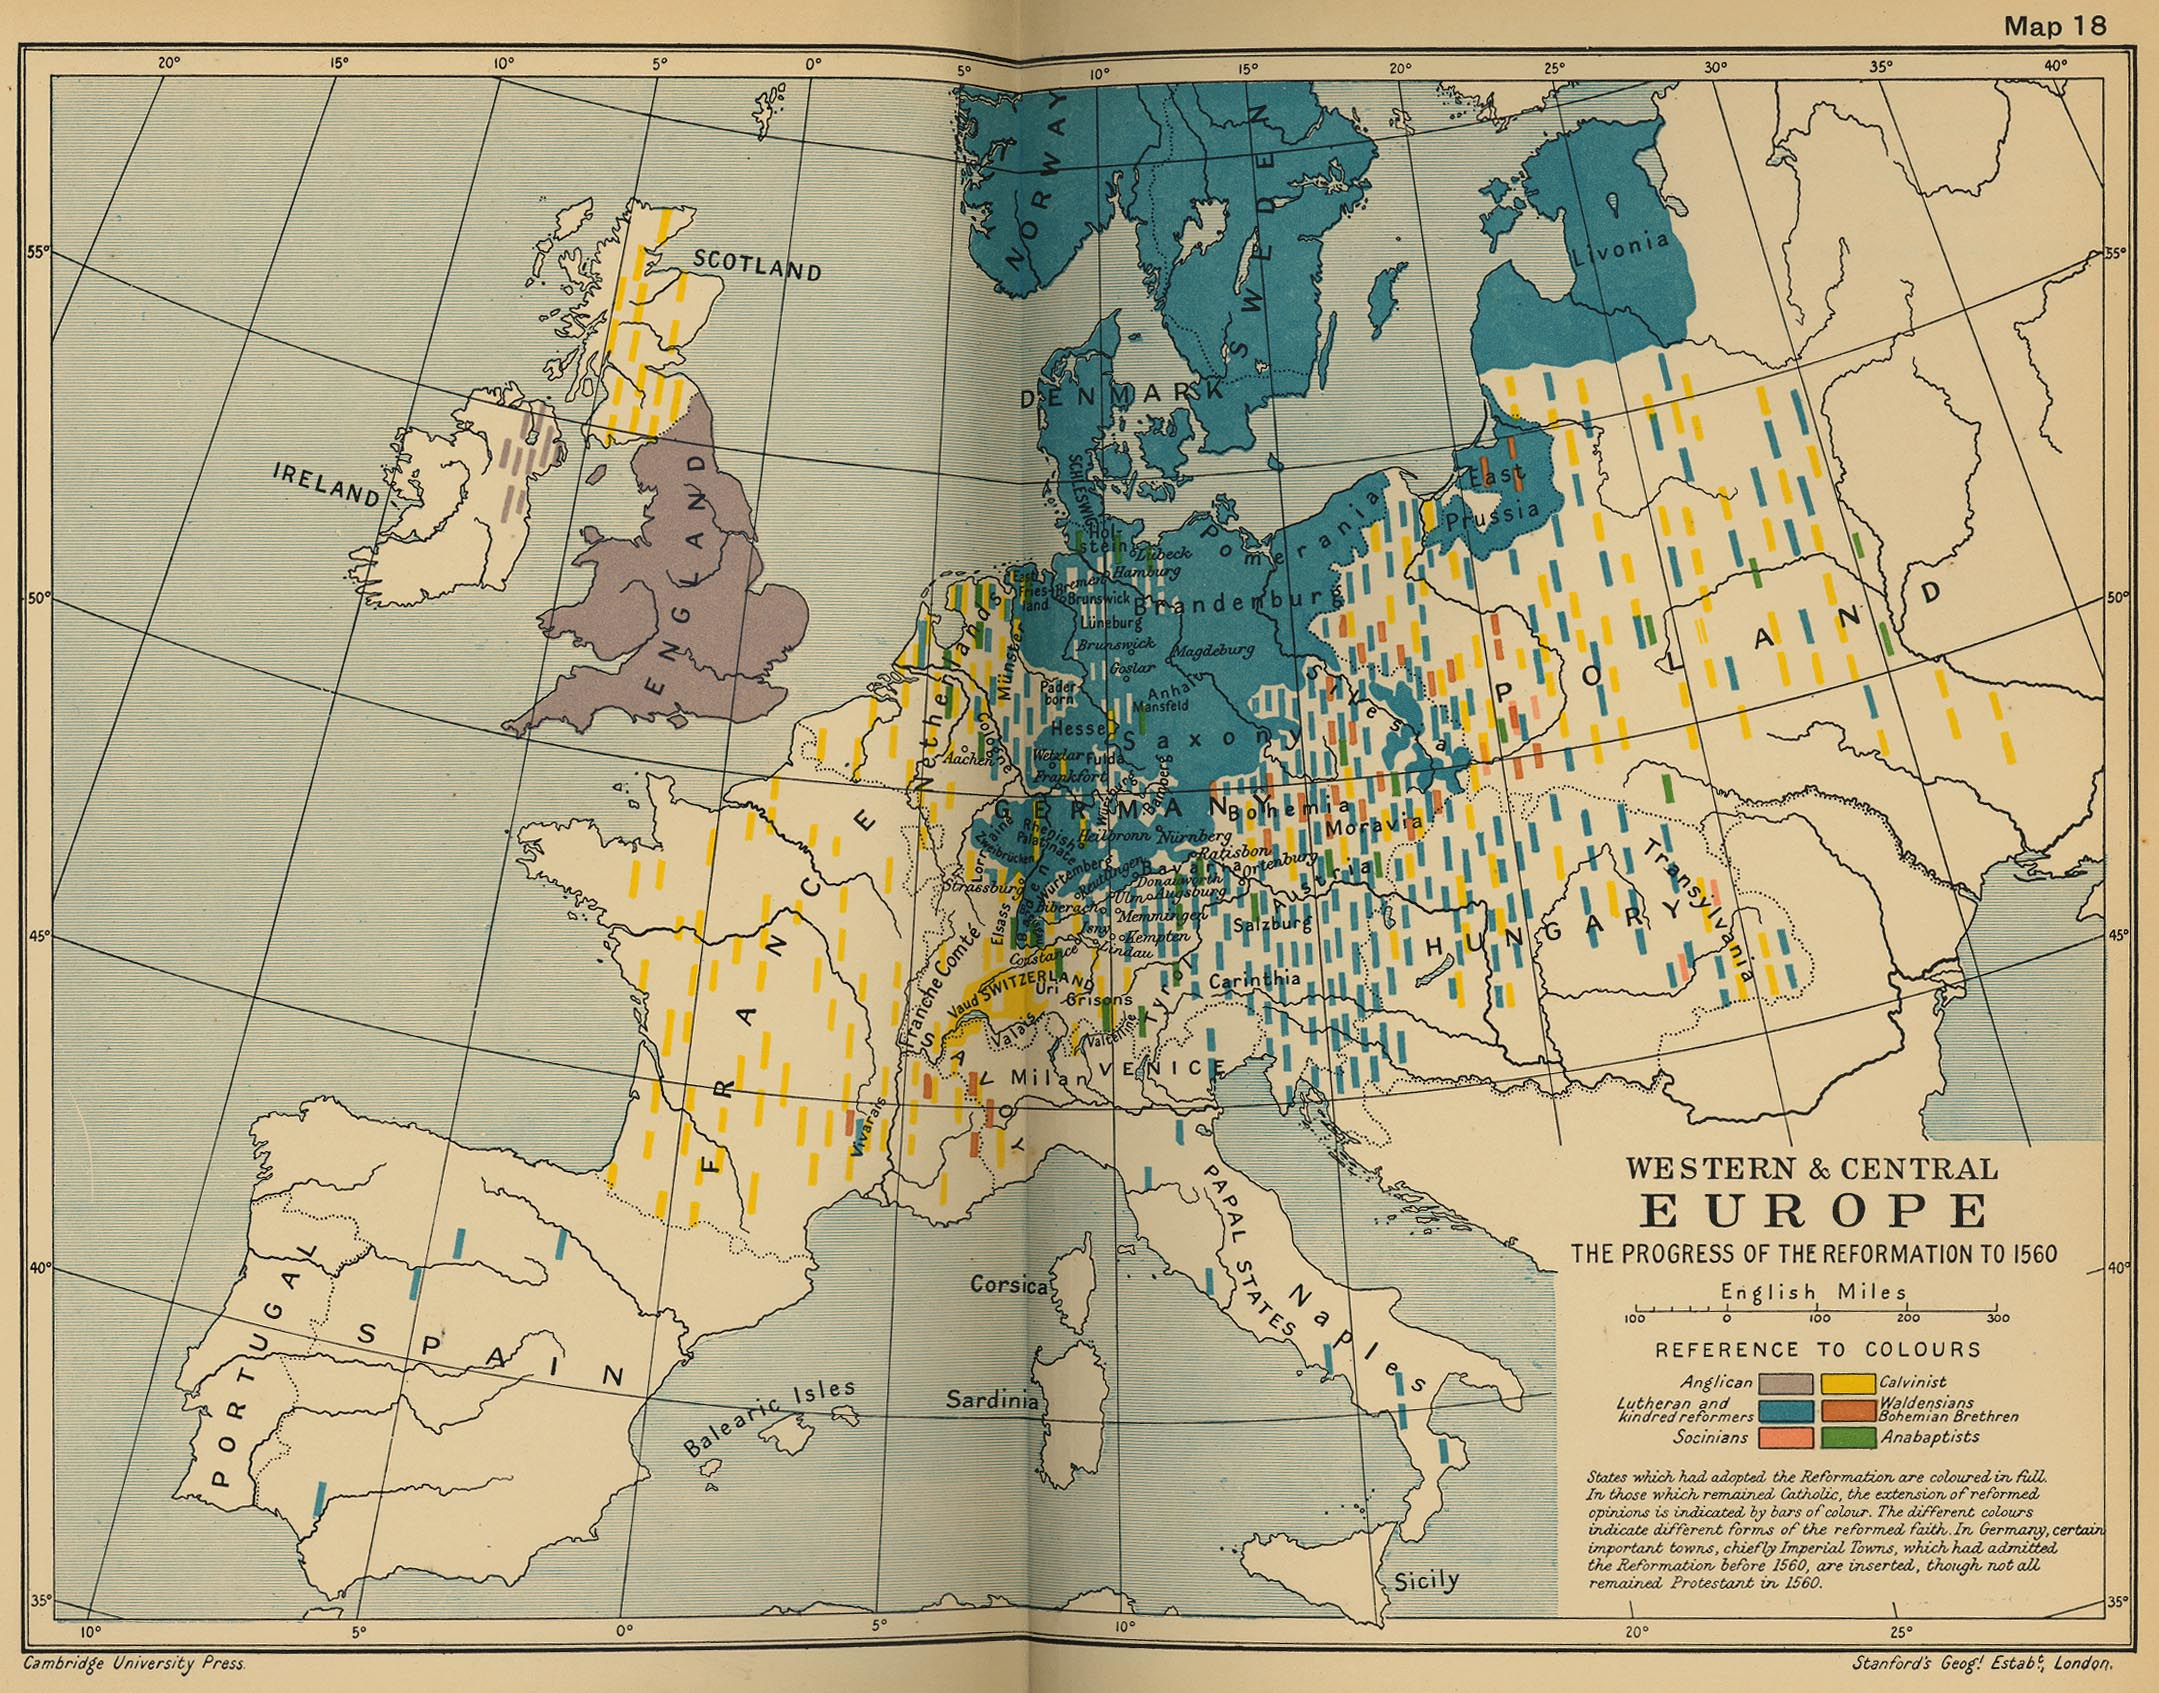 Map of Western and Central Europe - The Progress of the Reformation of 1560